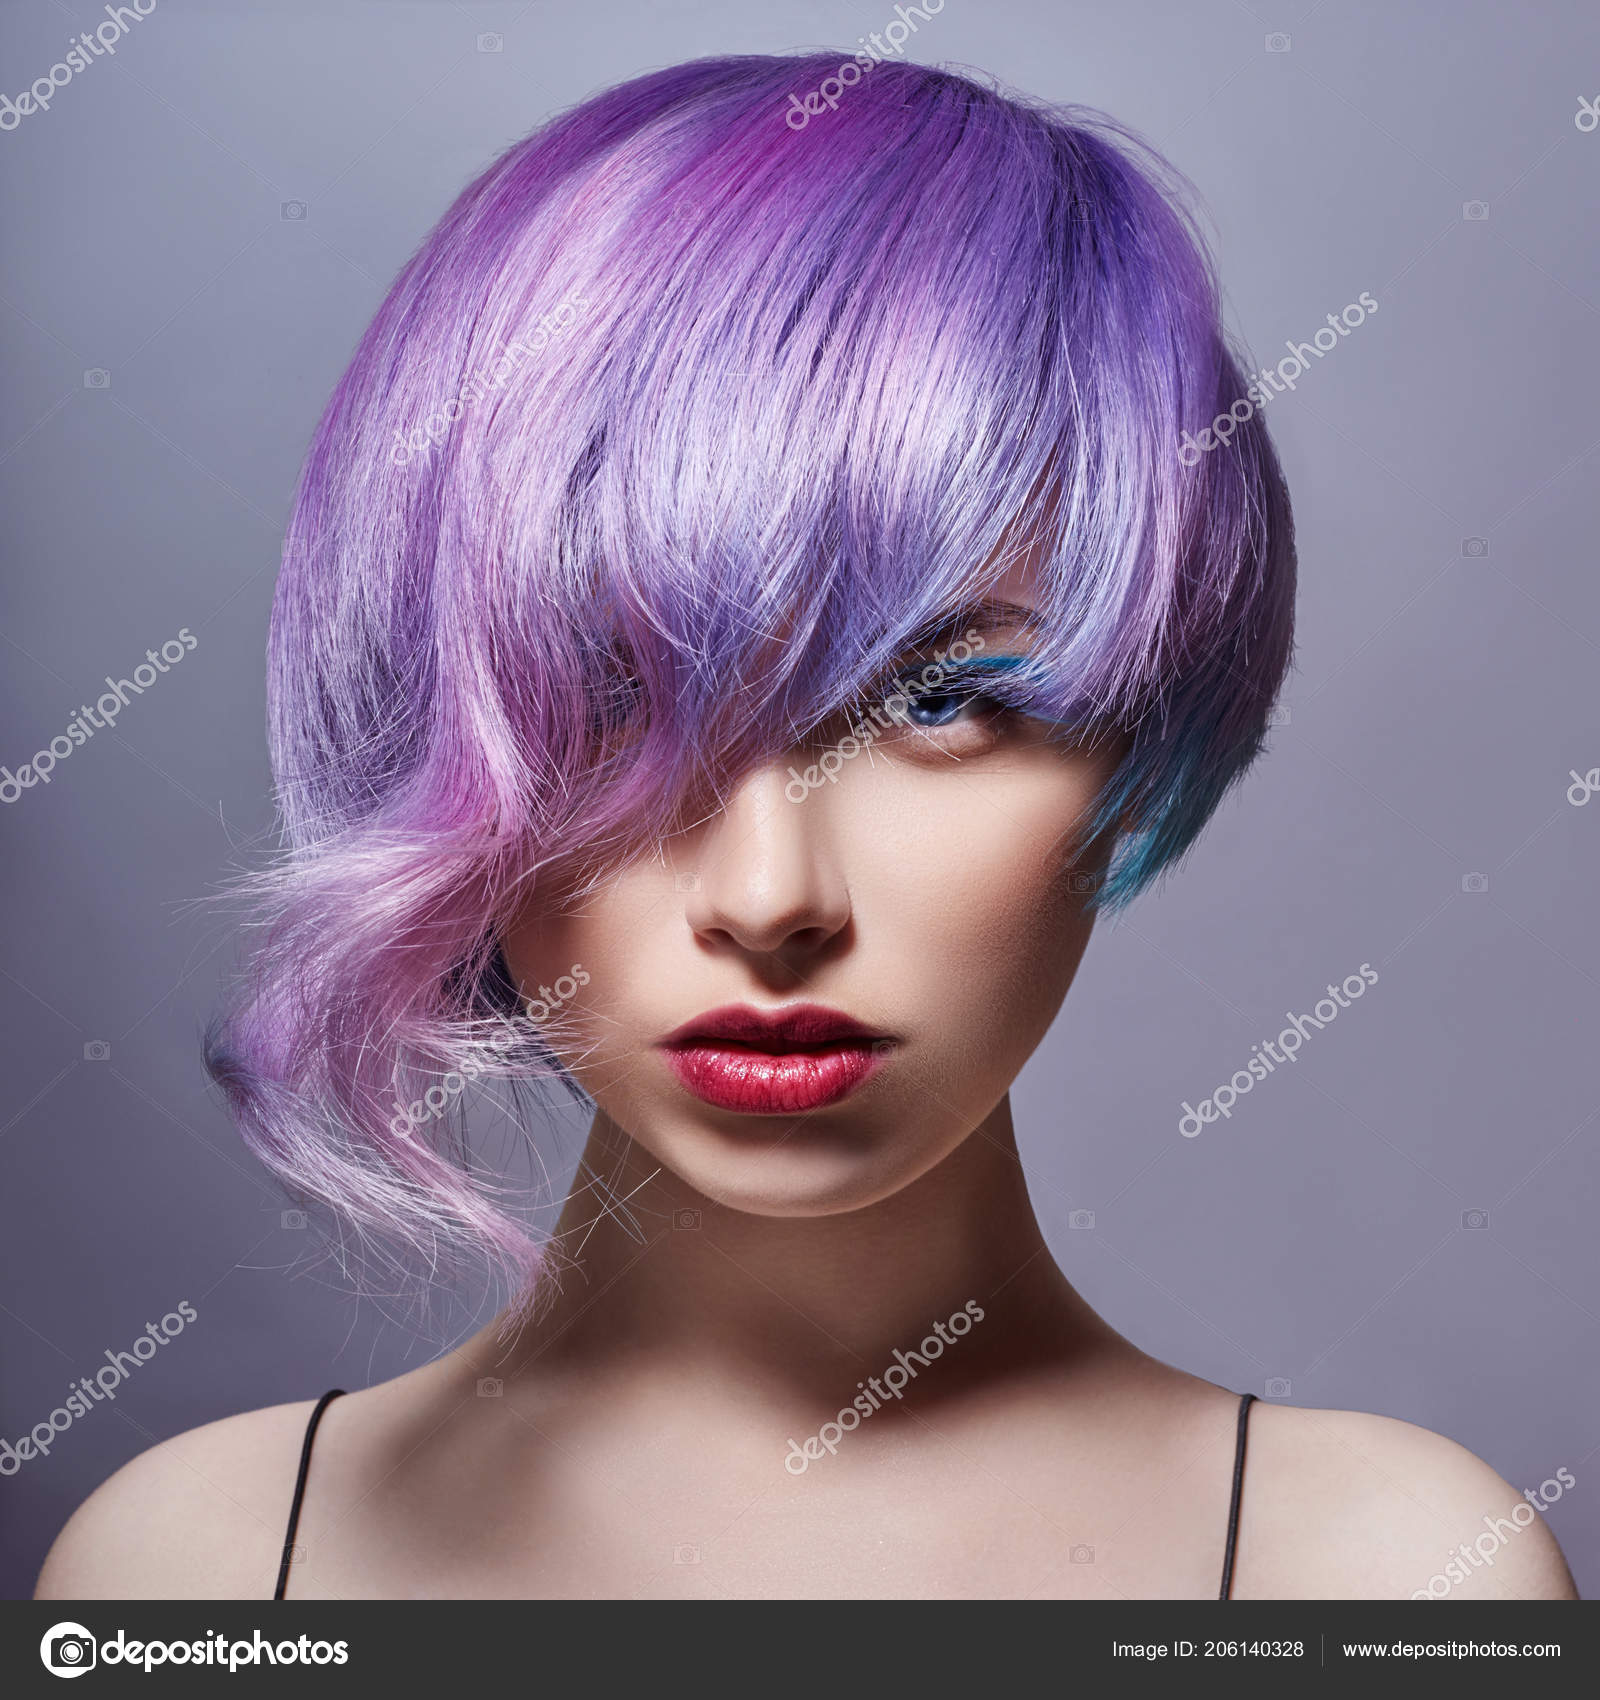 Portrait Woman Bright Colored Flying Hair All Shades Purple Hair